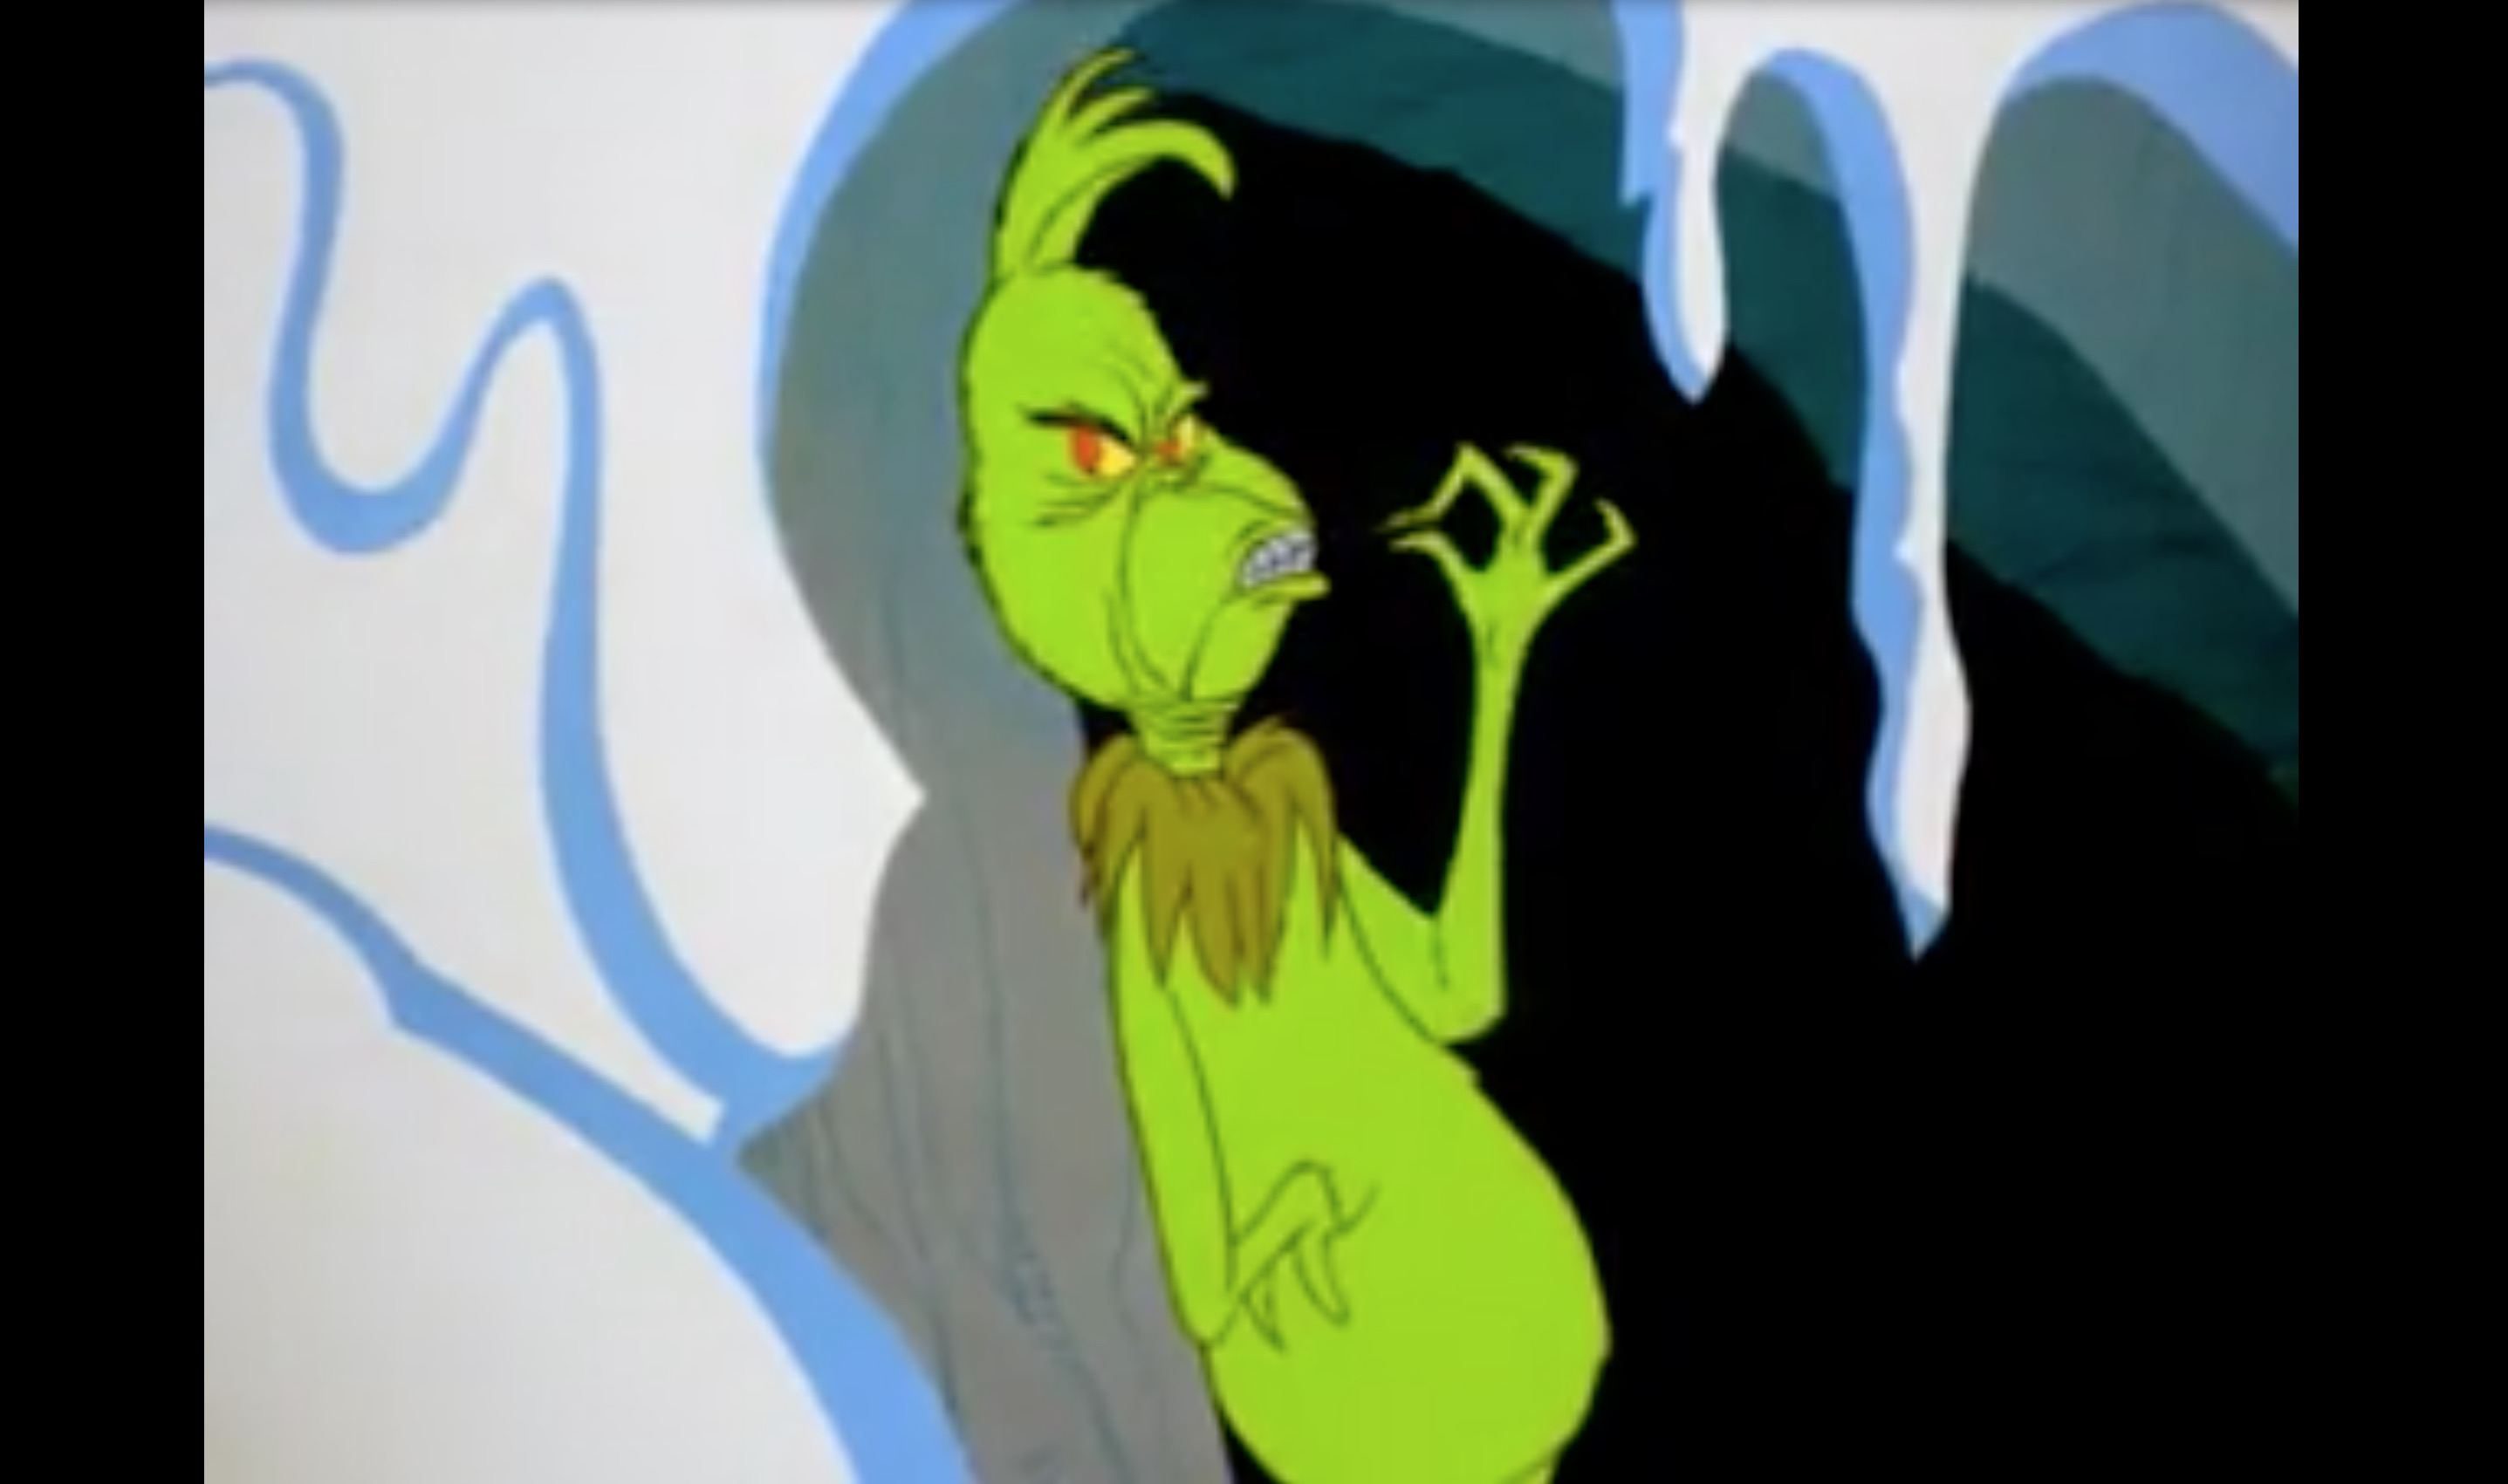 A still image of The Grinch.